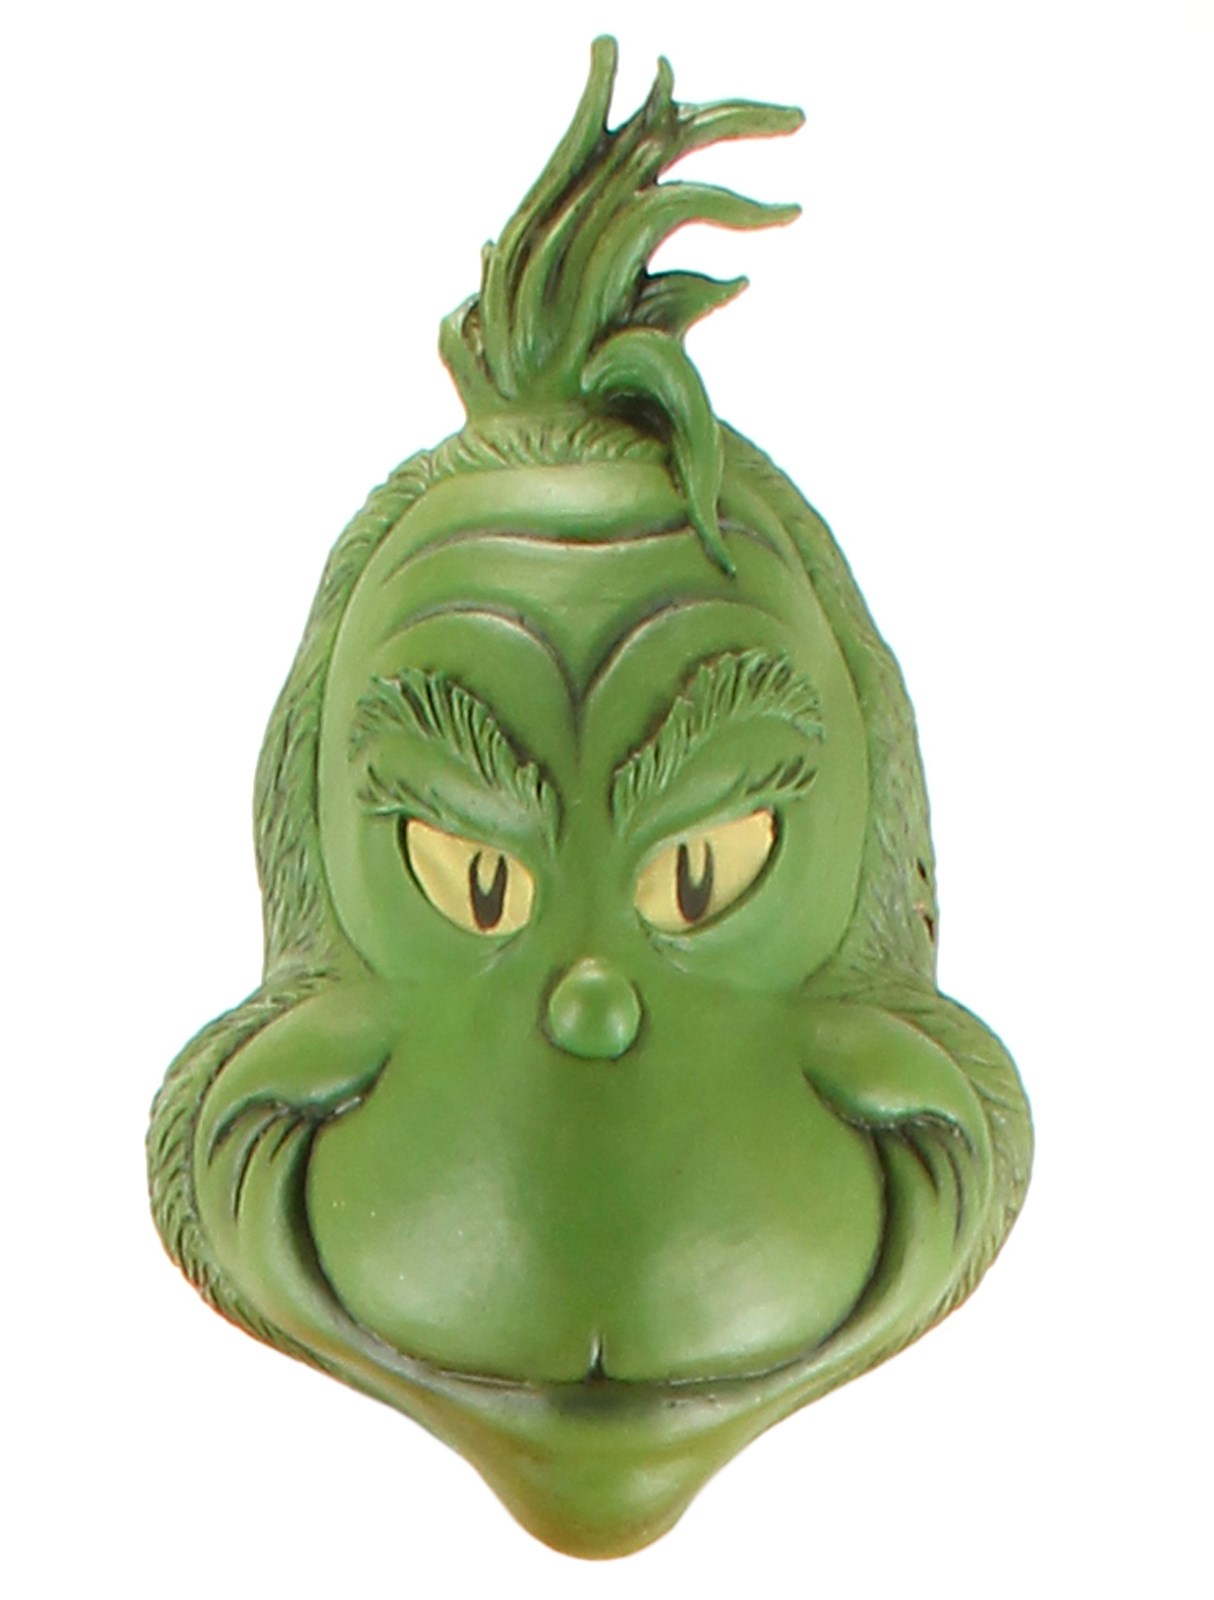 How the Grinch Stole Christmas - The Grinch Latex Mask (Adult)